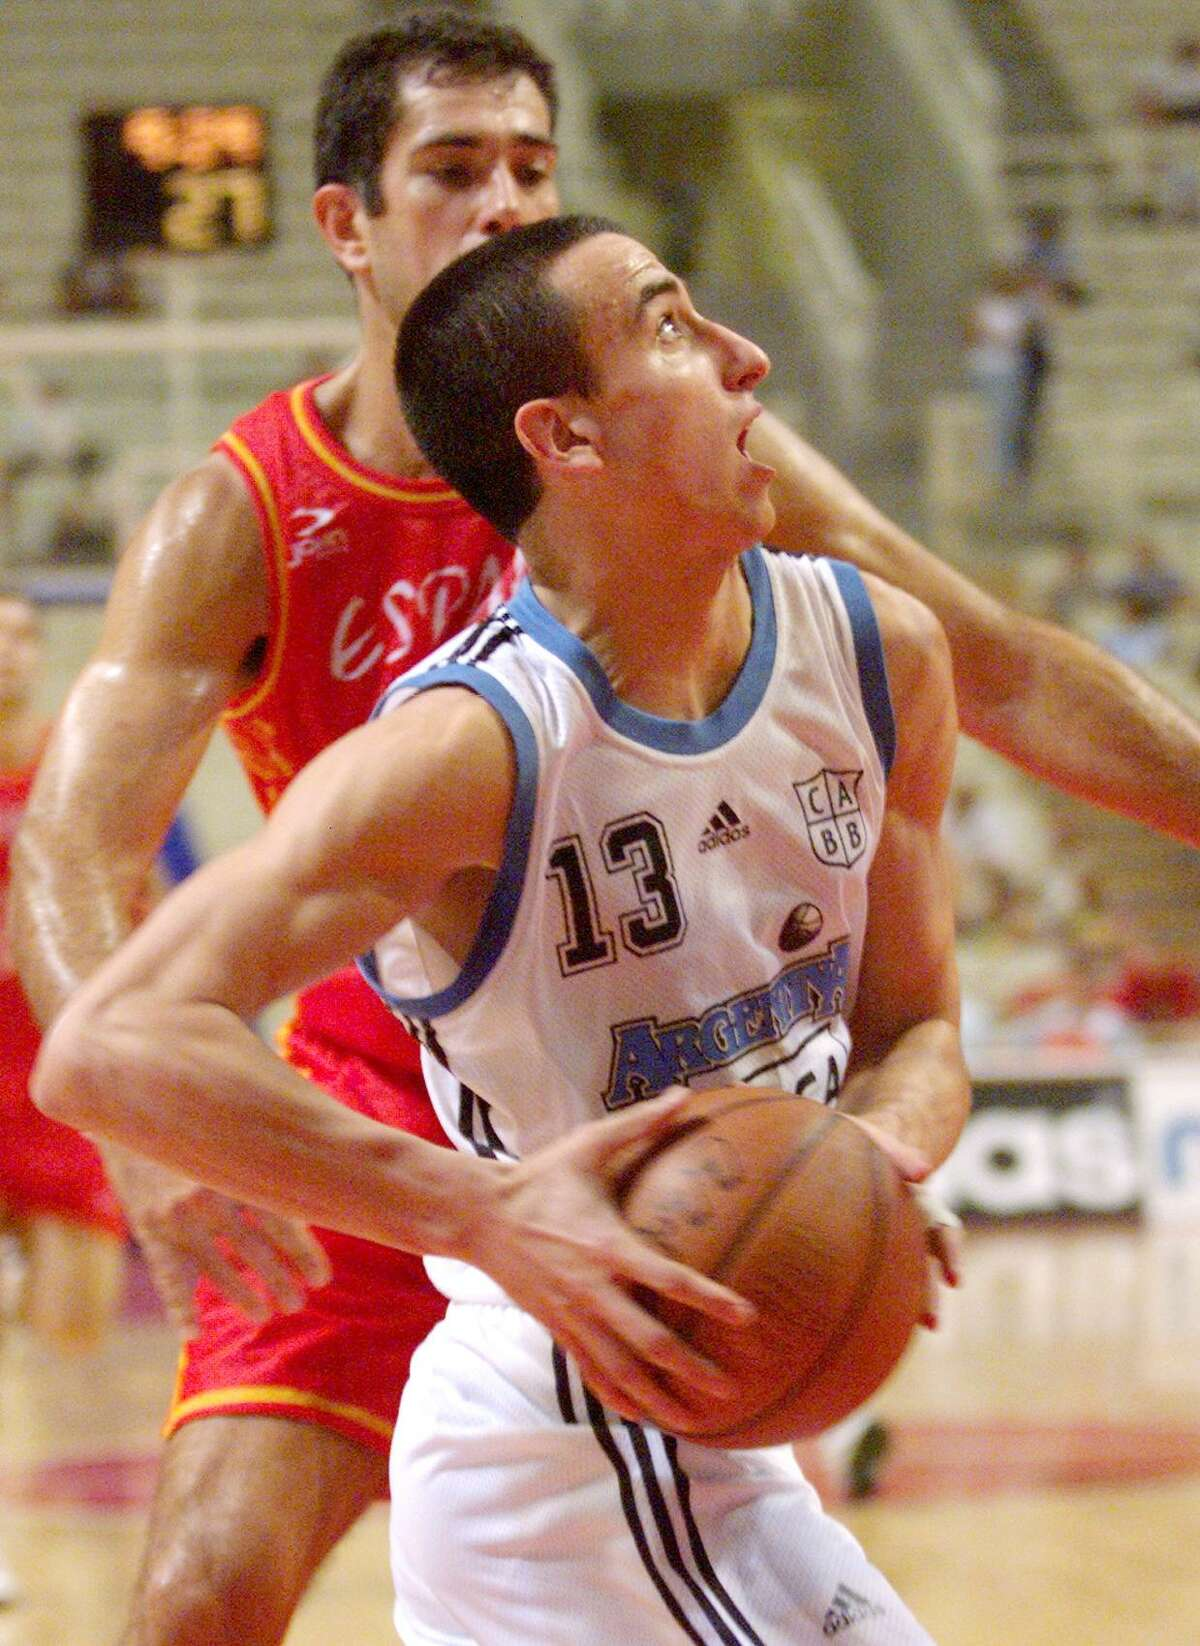 1998: Emanuel Ginobili (13) competes in the World basketball Championship.